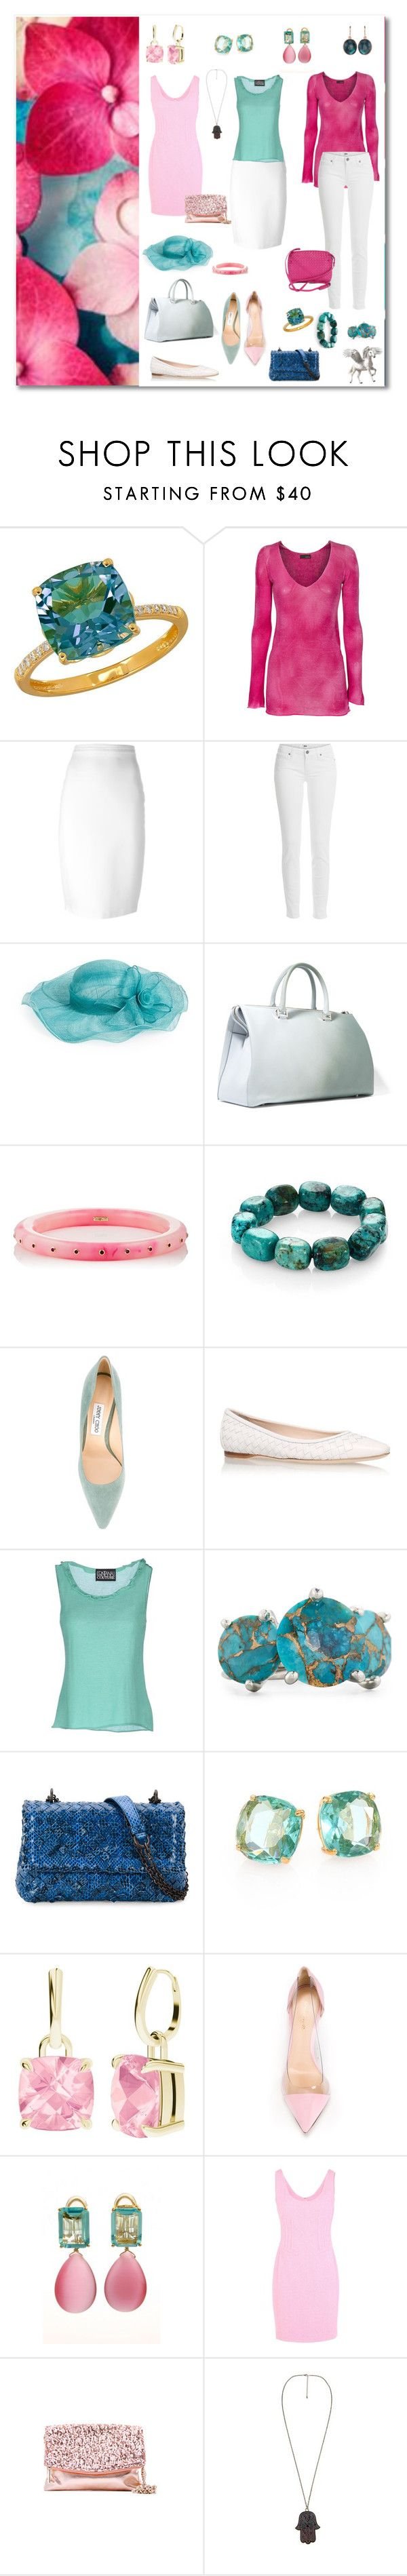 turquoise and cool pink wardrobe capsule by sensual-spirit on Polyvore featuring Moschino, Avant Toi, Fontana Couture, Paige Denim, Givenchy, Gianvito Rossi, Bottega Veneta, Jimmy Choo, Jil Sander and MANGO